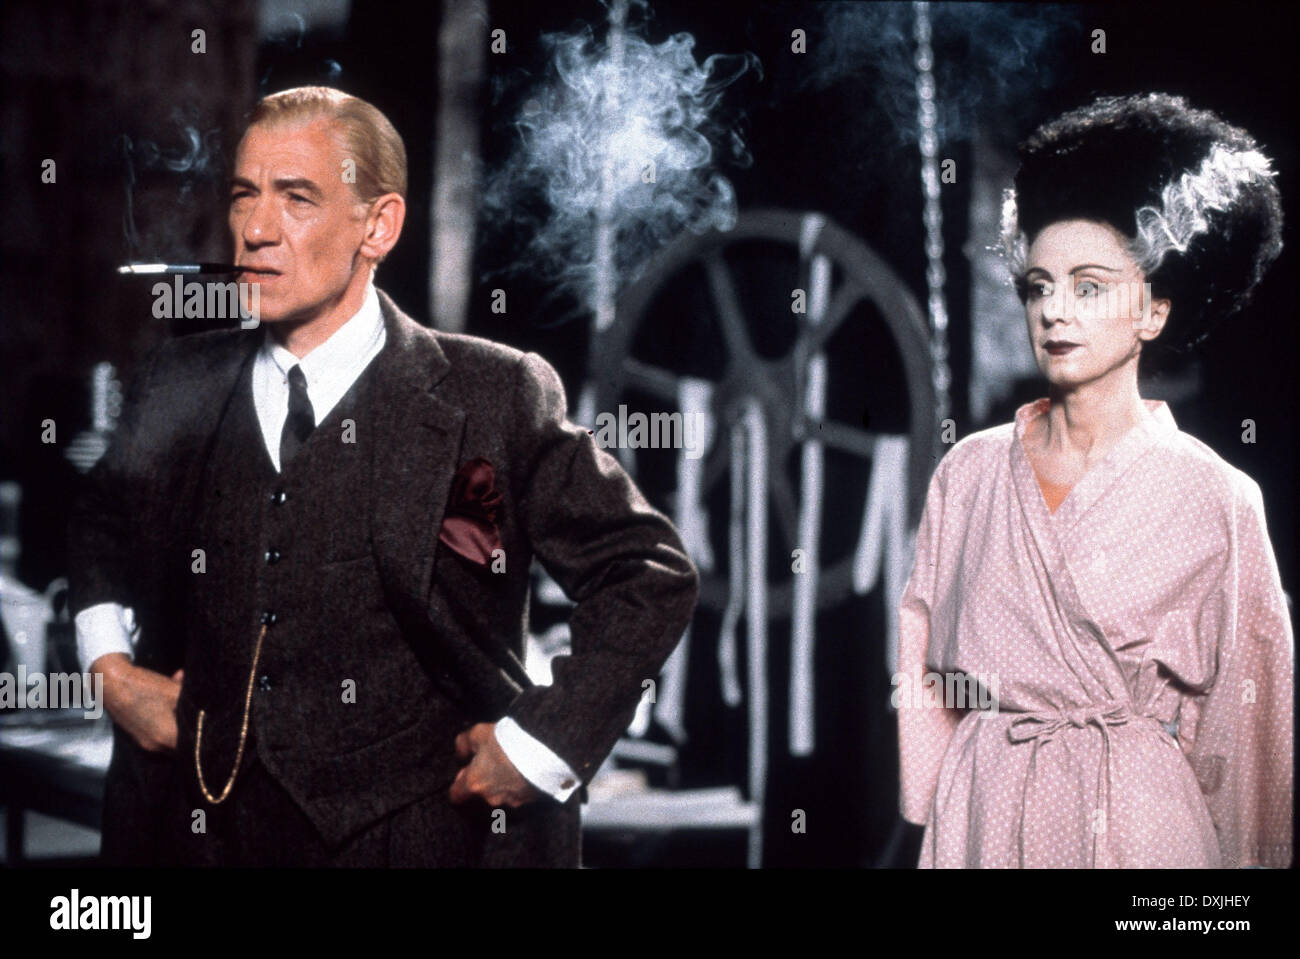 GODS AND MONSTERS (US/UK 1998) IAN McKELLEN, ROSALYND AYRES - Stock Image